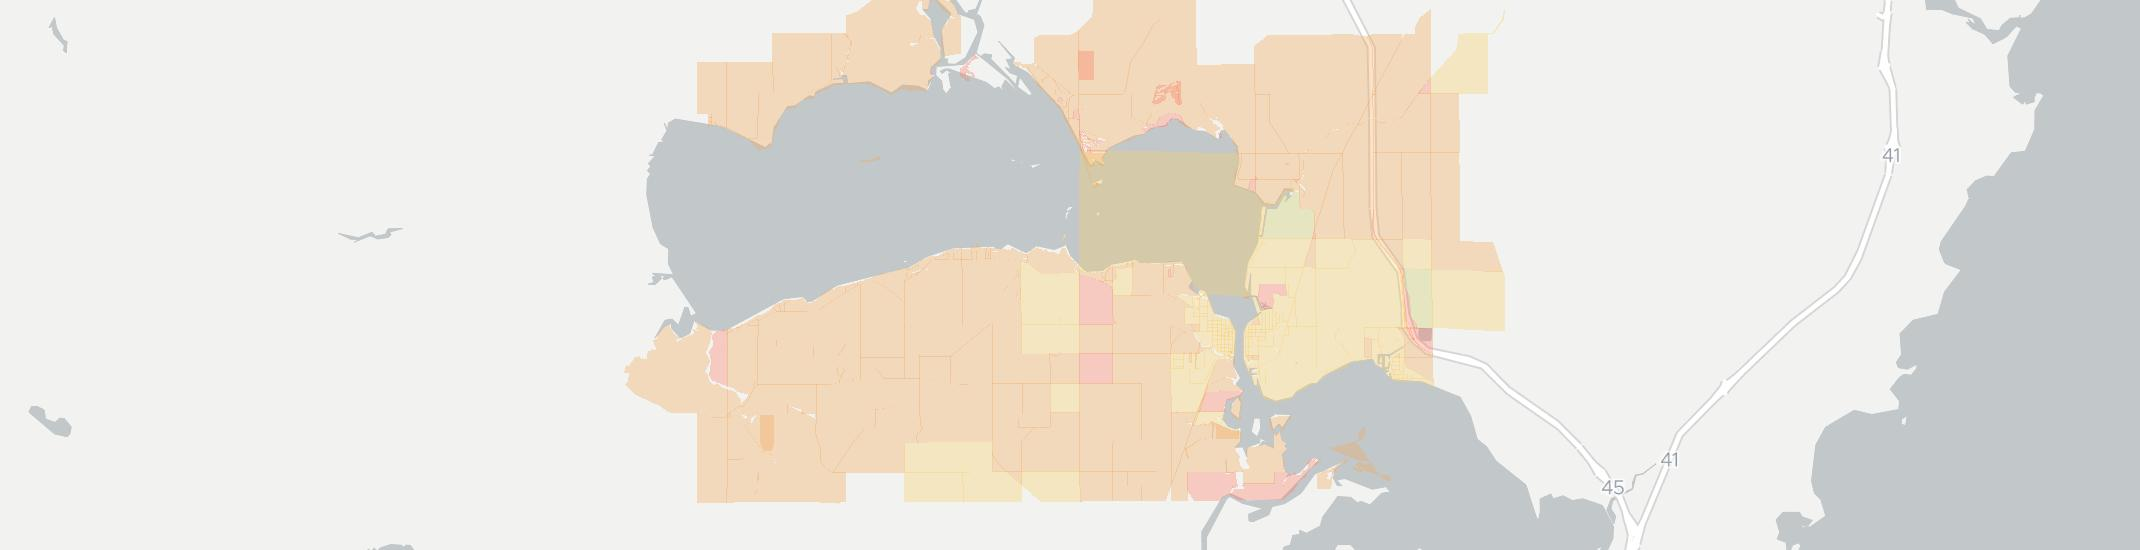 Winneconne Internet Competition Map. Click for interactive map.